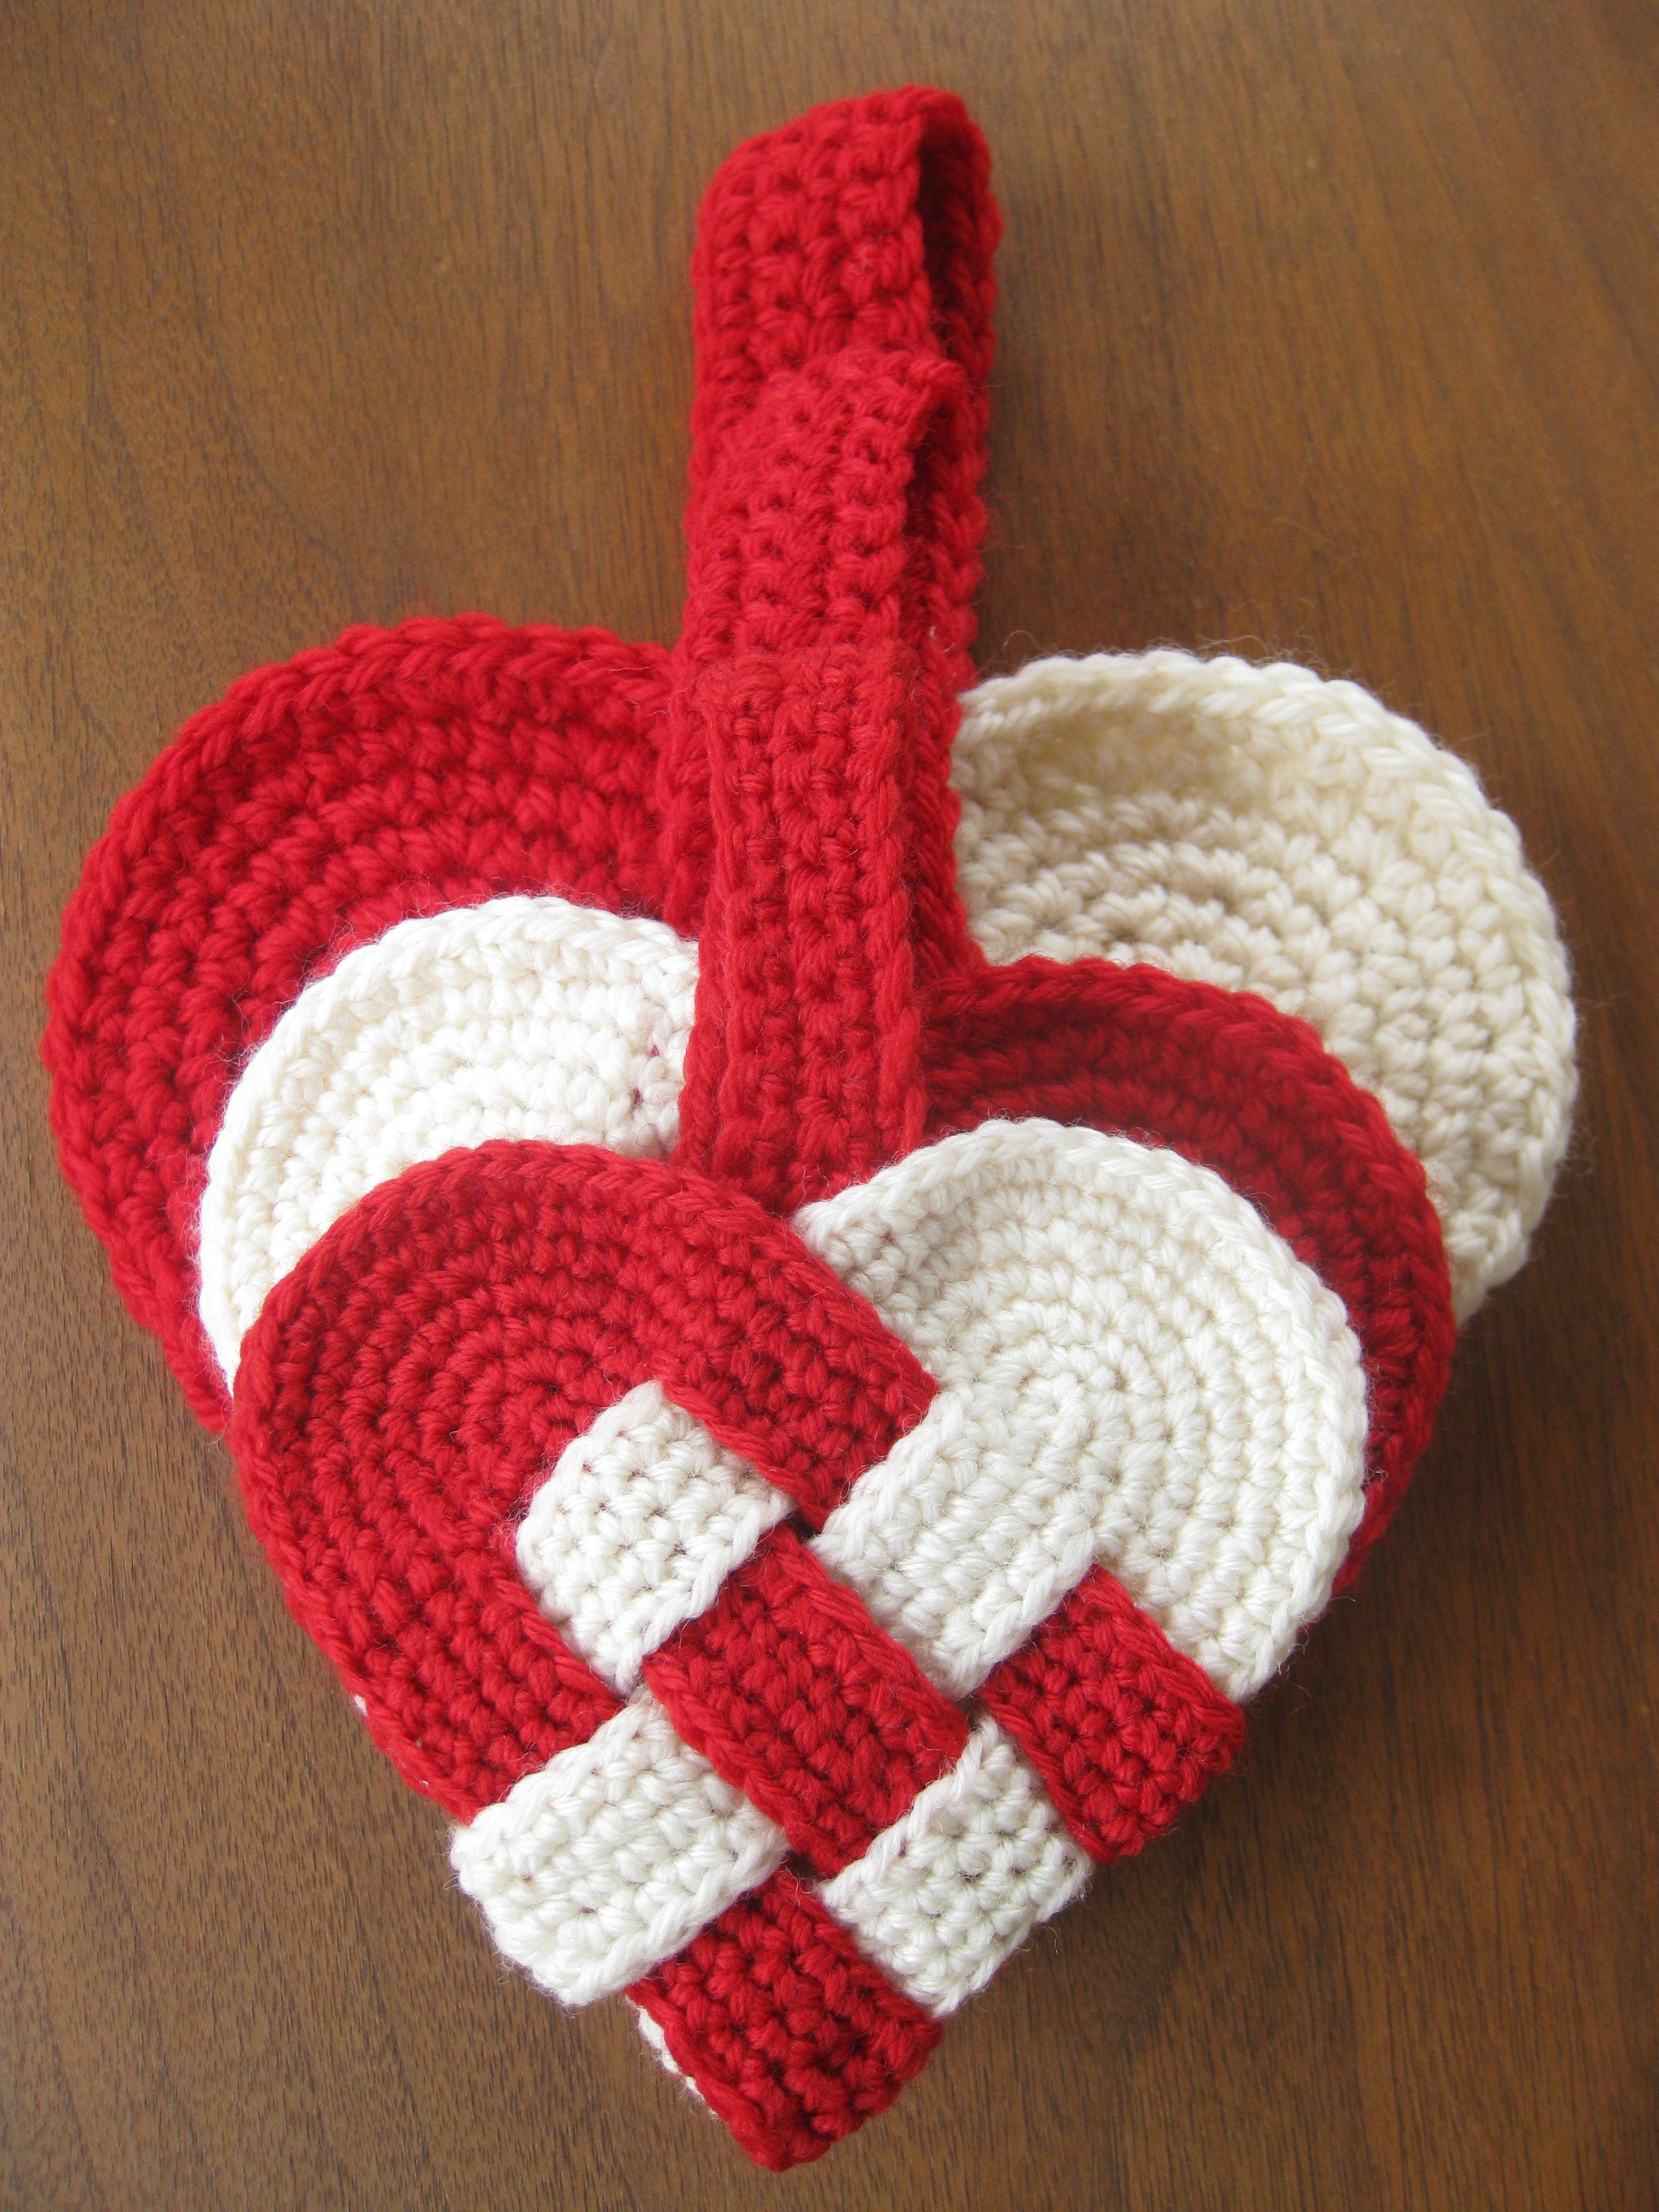 Crochet danish hearts i remember making these wconstruction free danish heart crochet pattern great for christmas ornaments or valentines day bankloansurffo Images